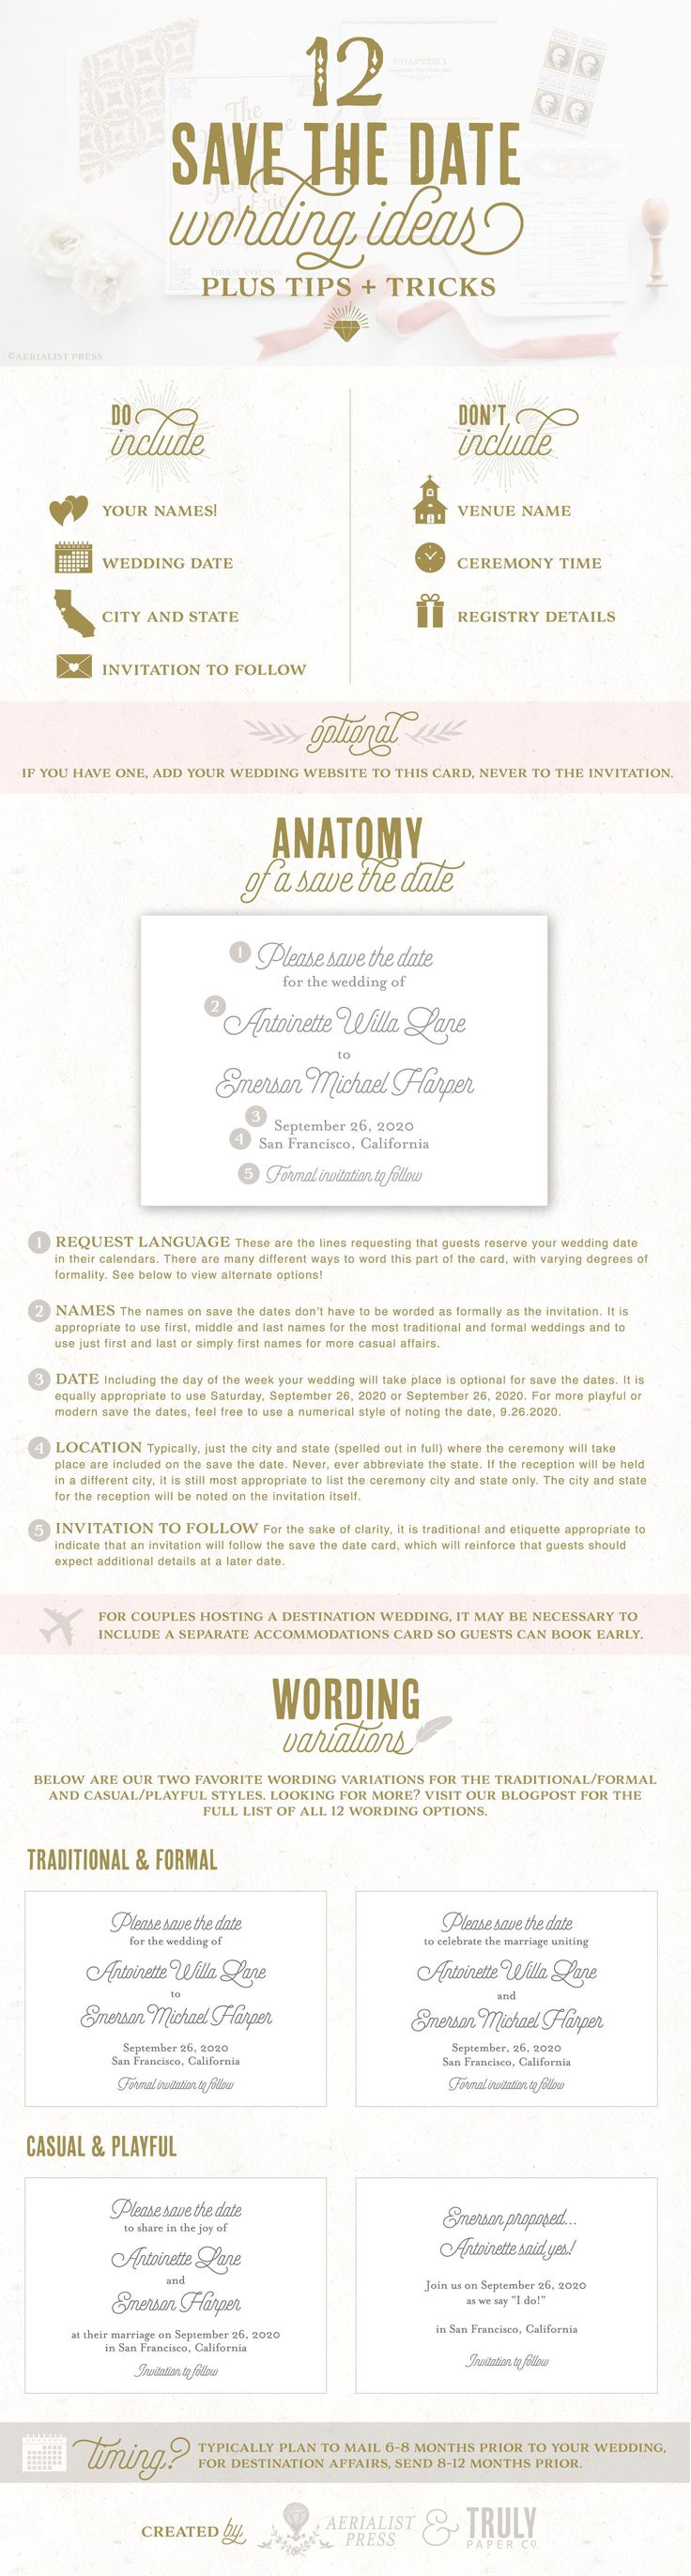 The Best Save the Date Wording Ideas & Sending Guide, plus 15% off Save the Dates from Aerialist Press!    ᘡղbᘠ